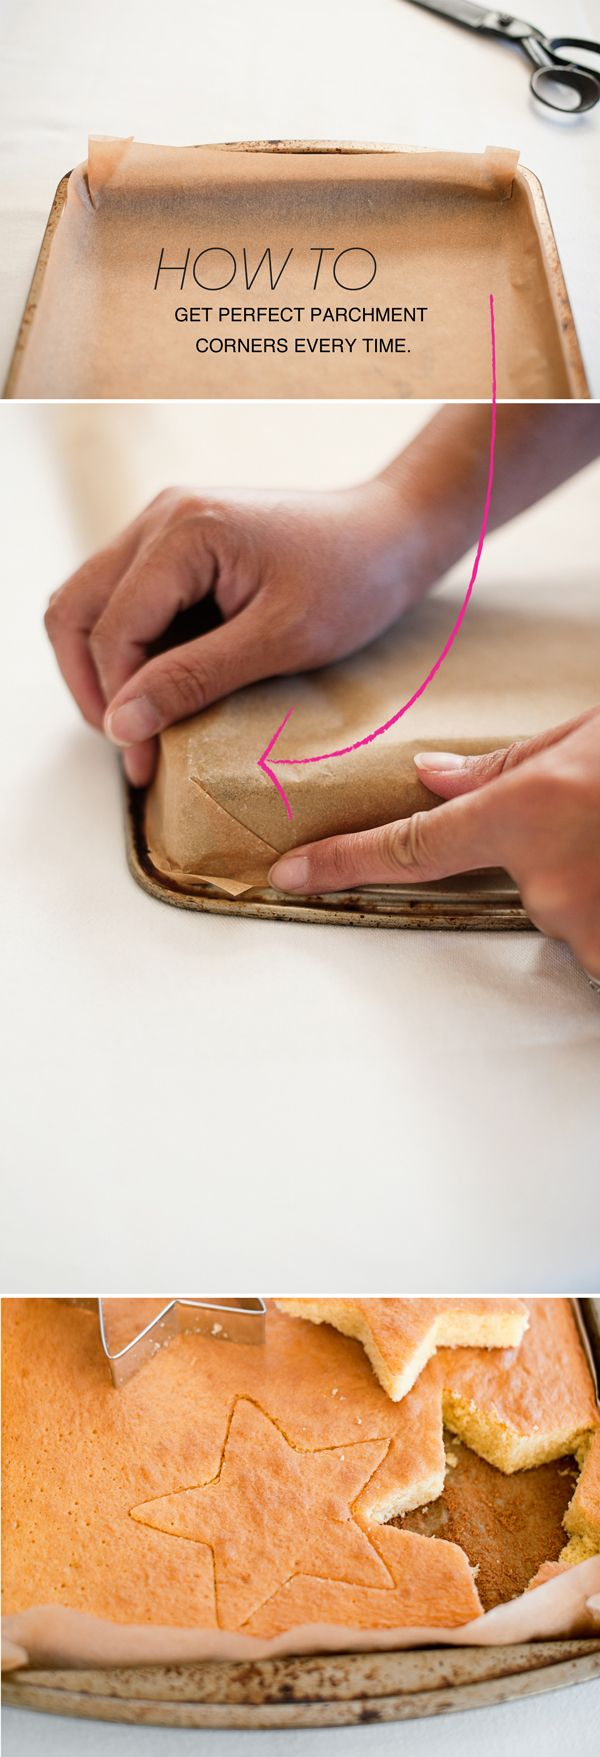 How to get perfect parchment corners every time